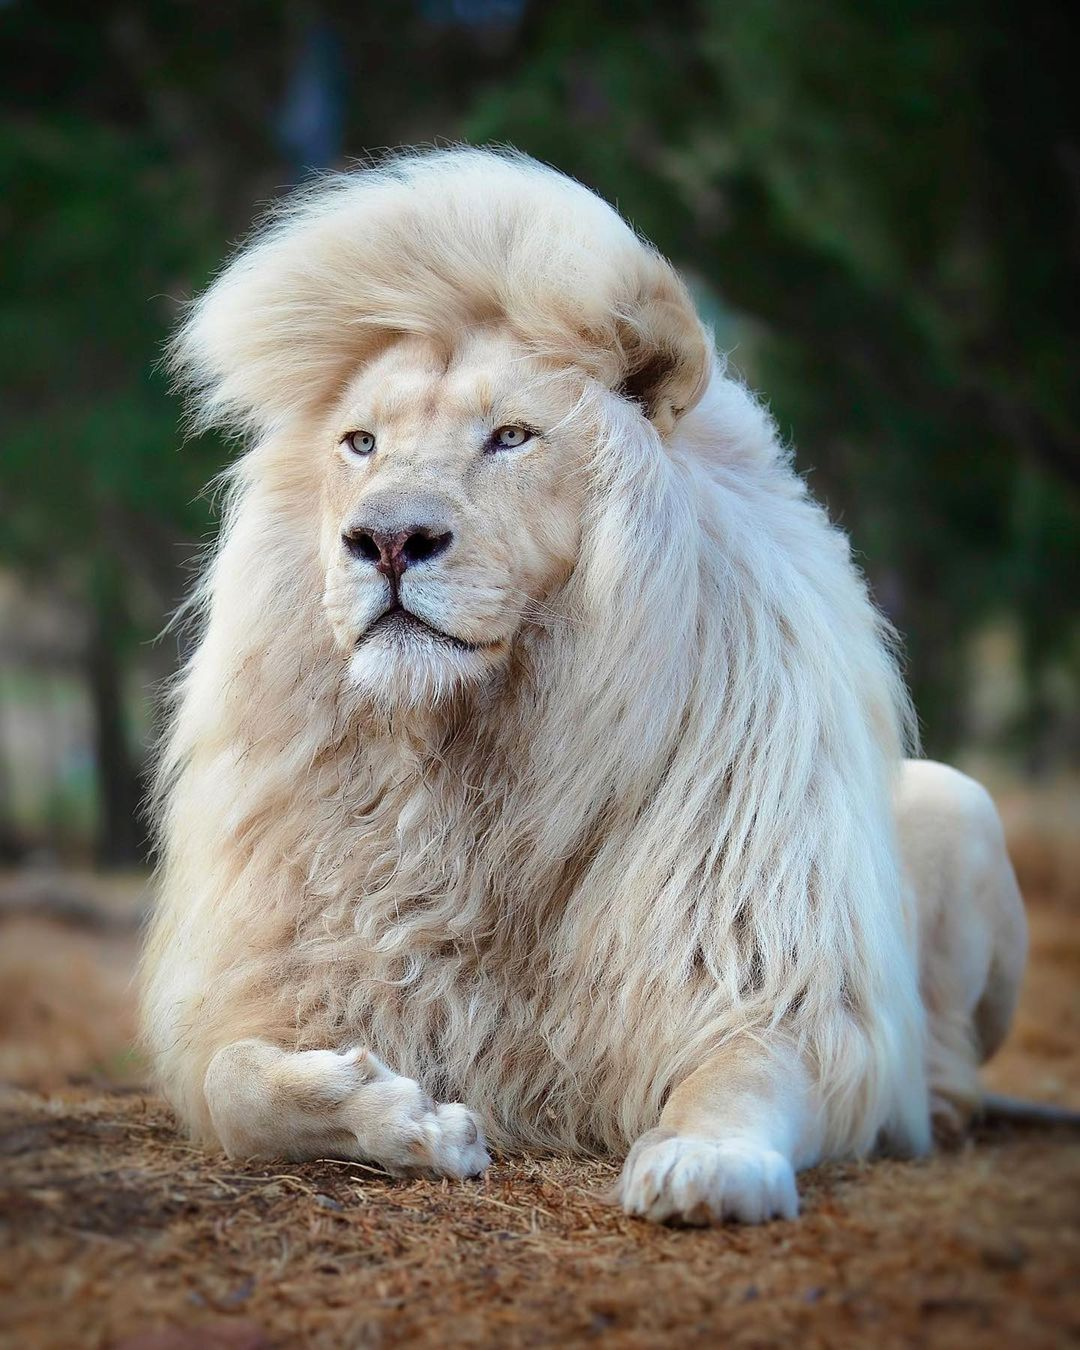 Nature Predators On Instagram King Sh T Moya The White Lion Looking Majestic Photo By Human Kind Phot Lions Photos Lion Images Lion Photography